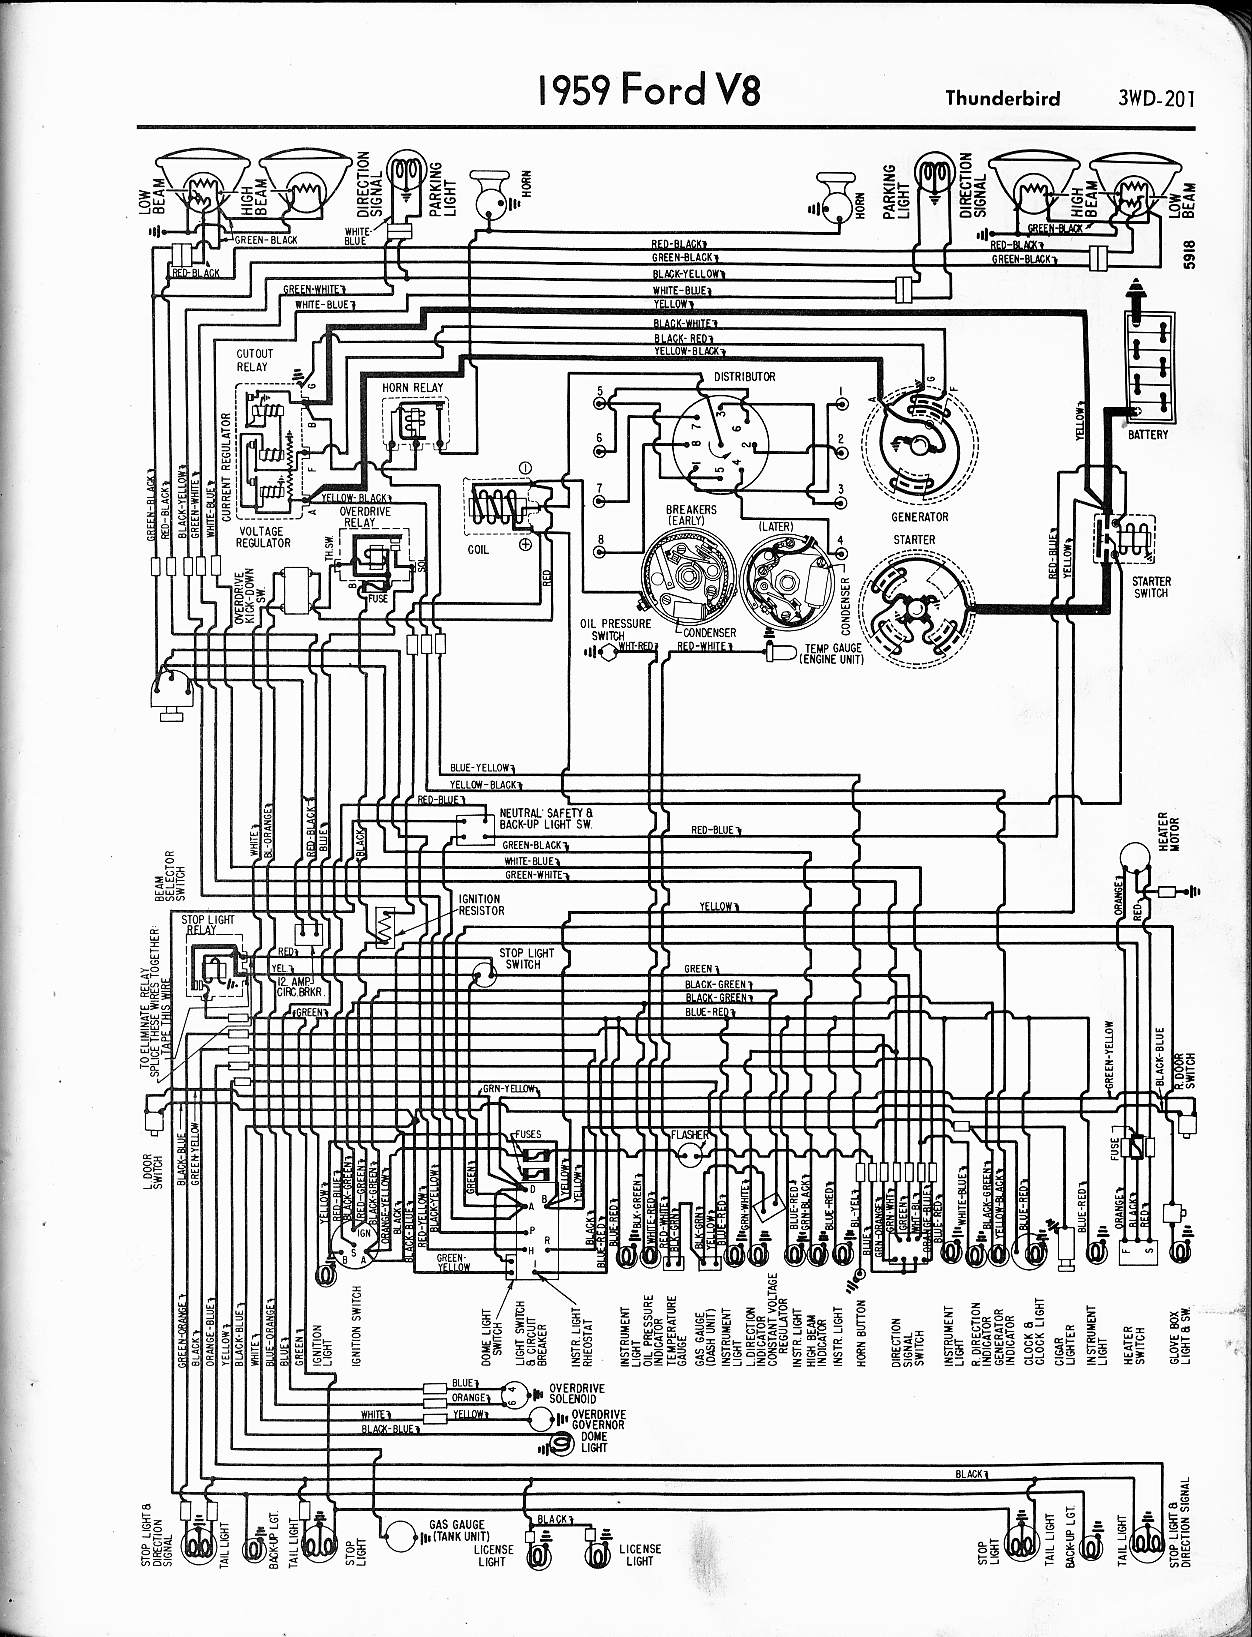 MWire5765 201 1960 ford wiring diagram 1960 ford f100 wiring diagram \u2022 wiring 1977 ford f100 wiring diagram at n-0.co